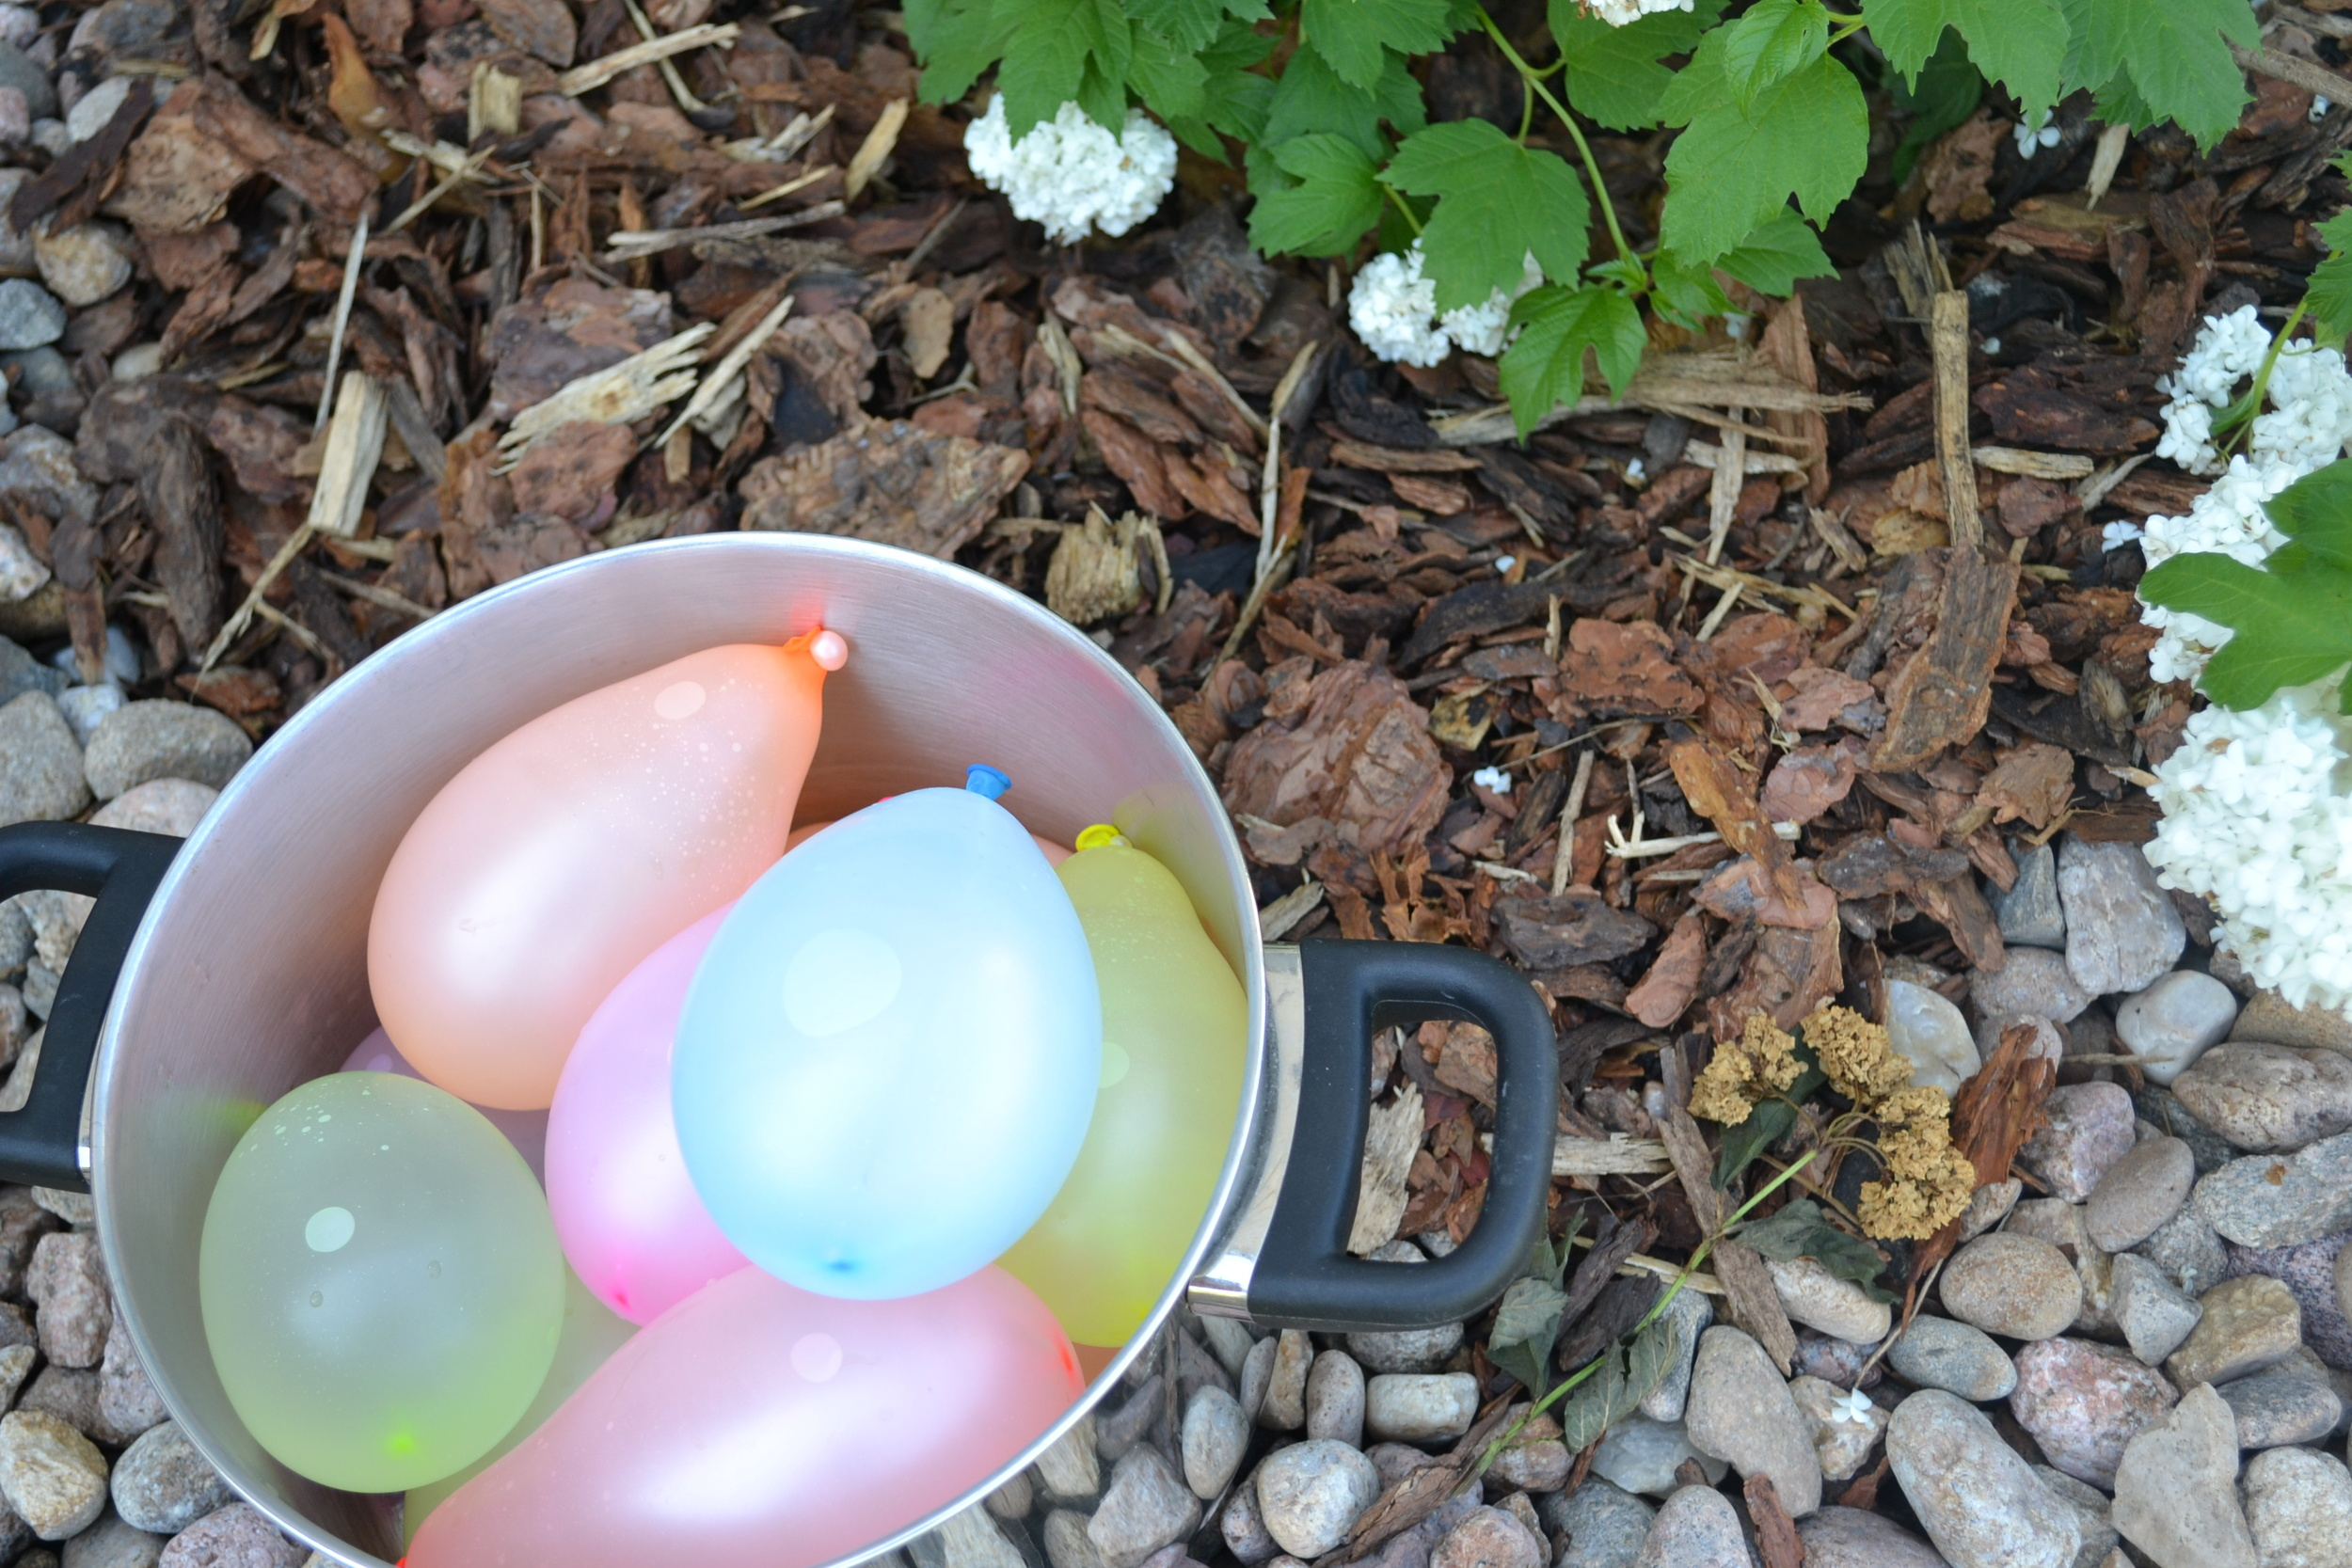 Bucket of water balloons